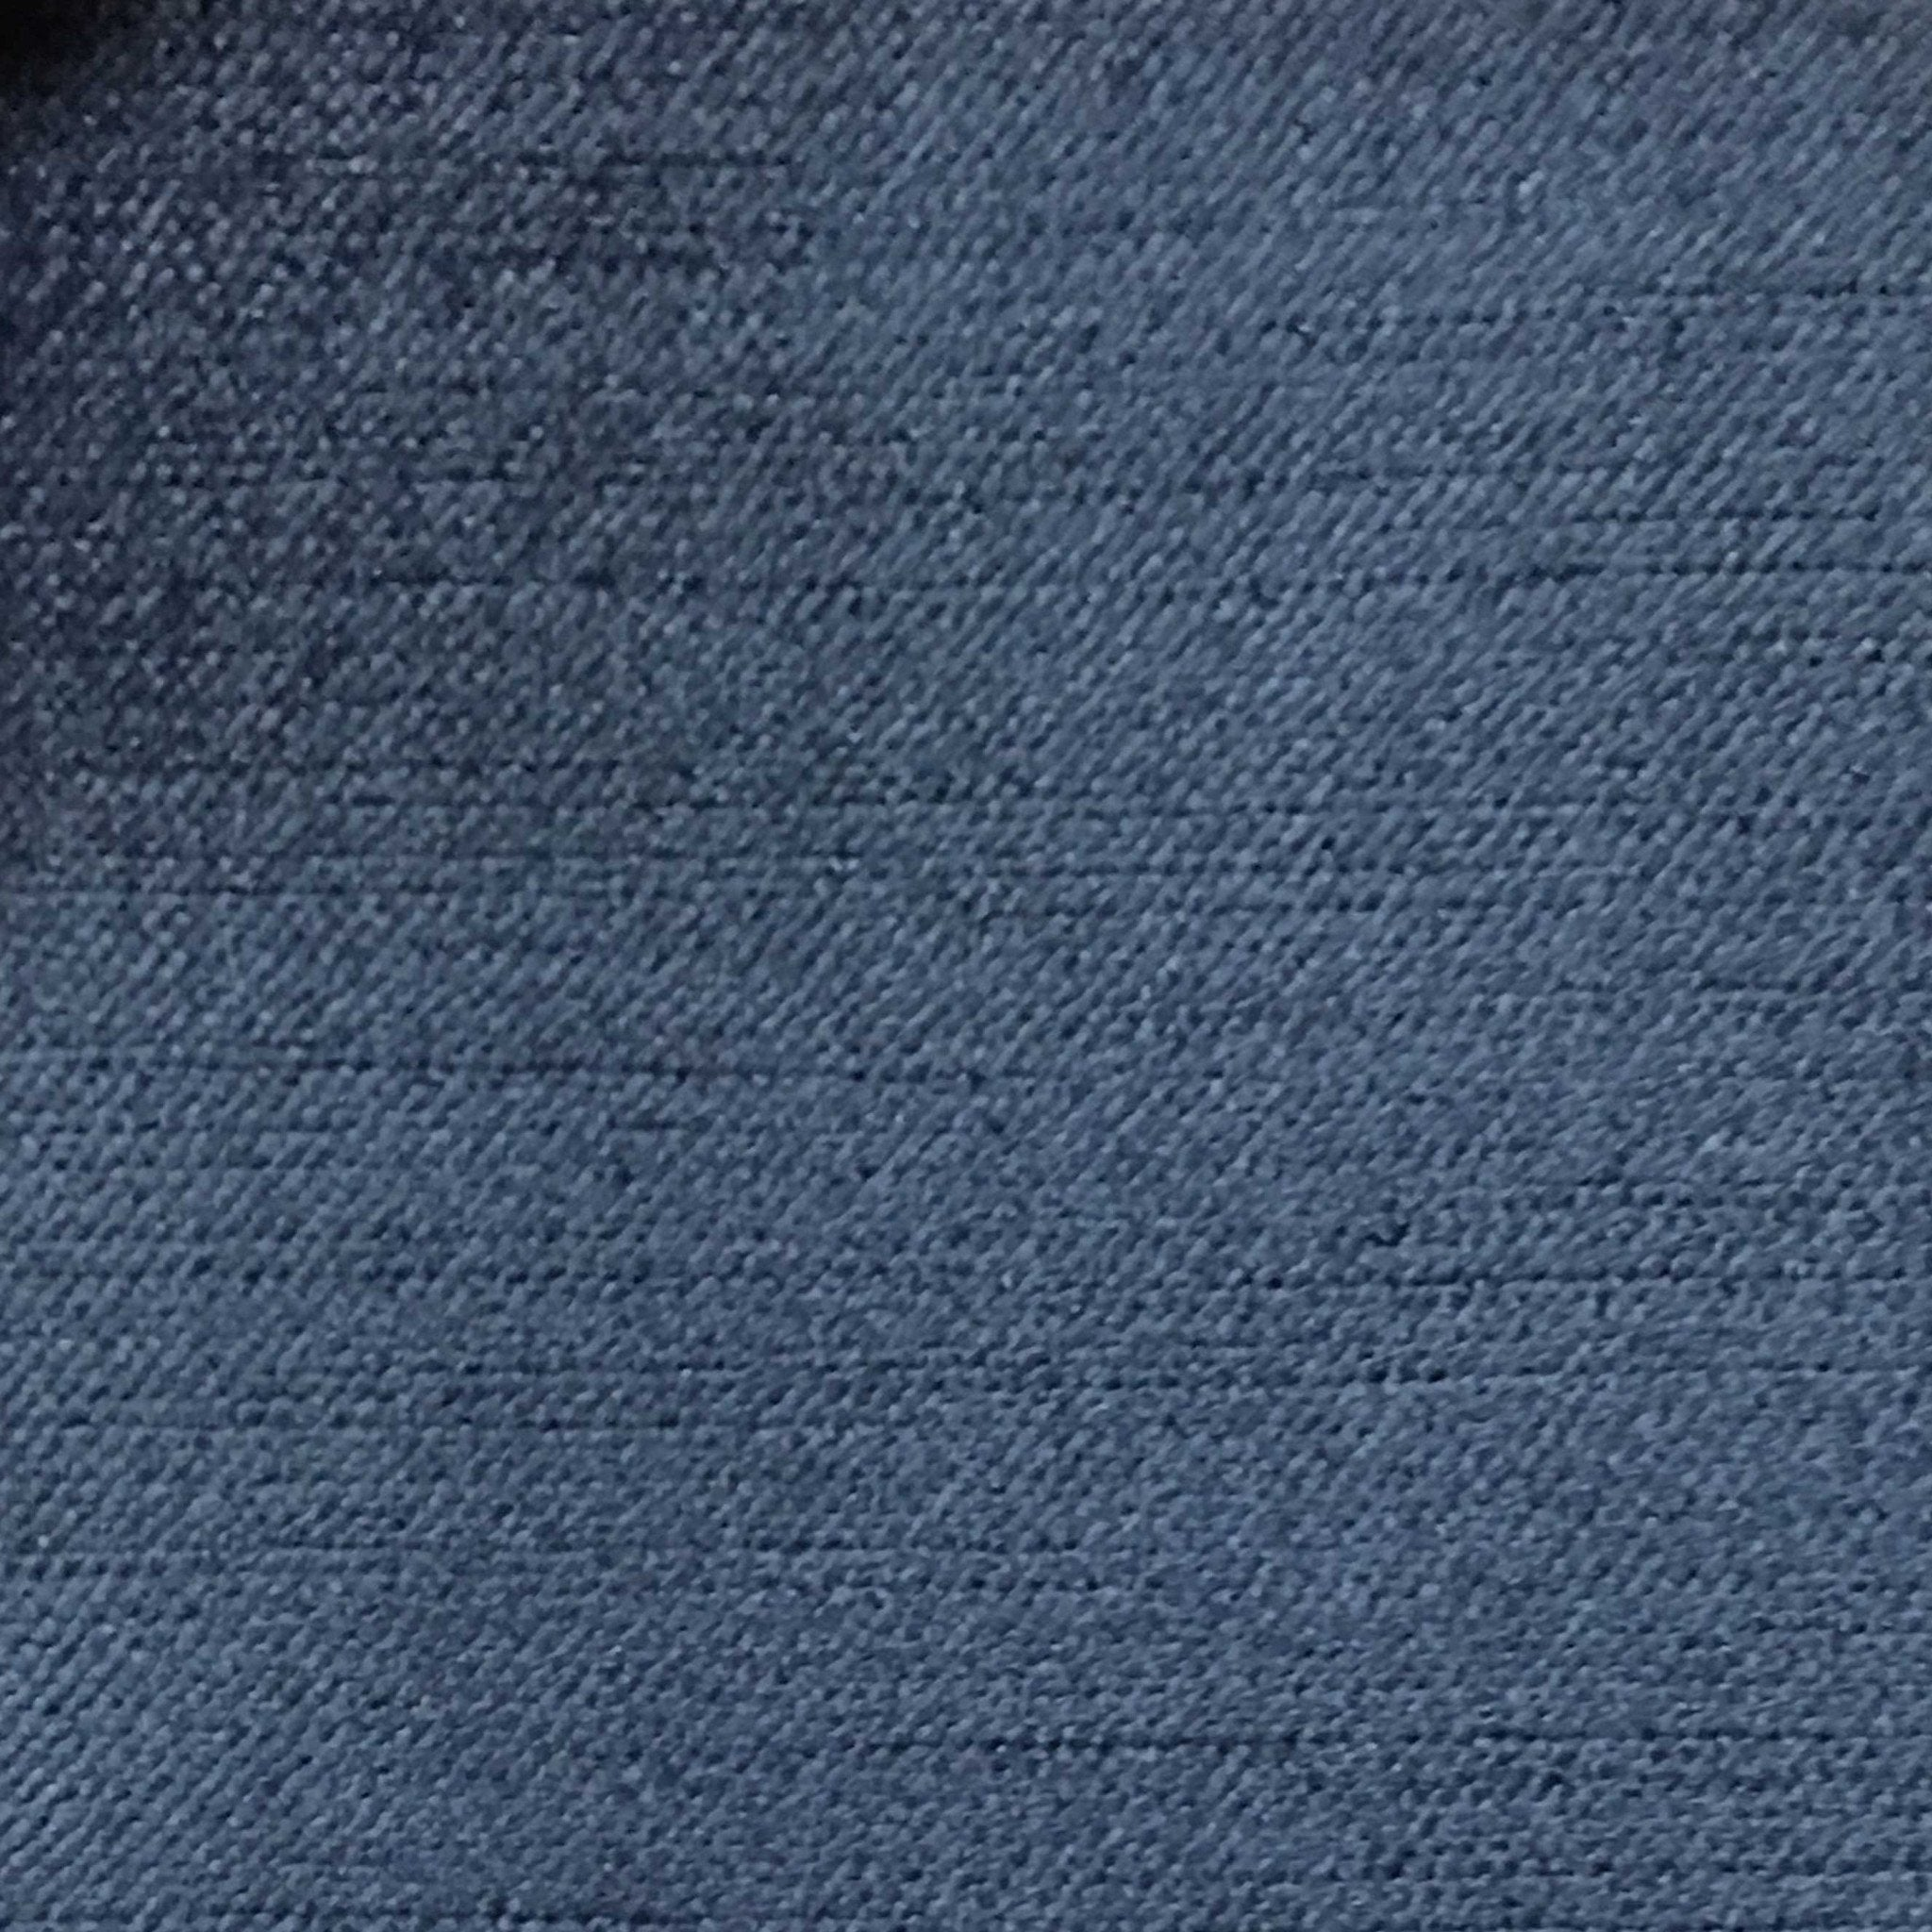 Queen lustrous metallic cotton rayon velvet upholstery for Cloth by the yard